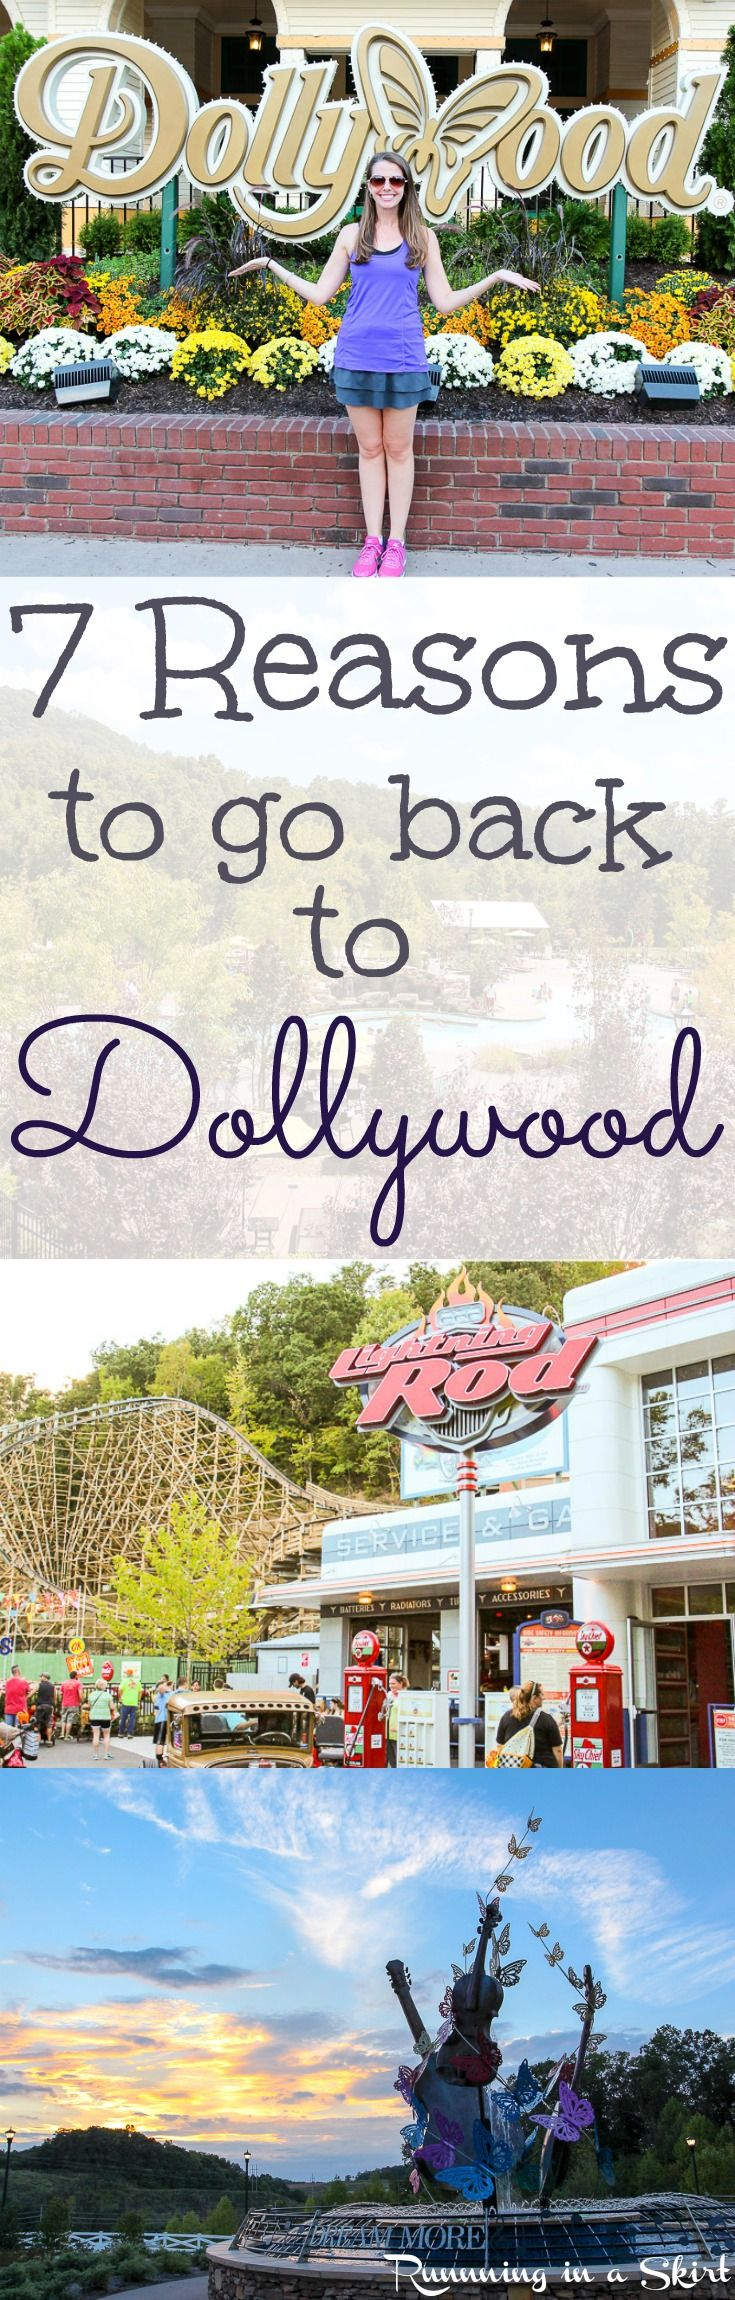 7 Reasons to Go Back to Dollywood | Pigeon forge tennessee, Pretty ...